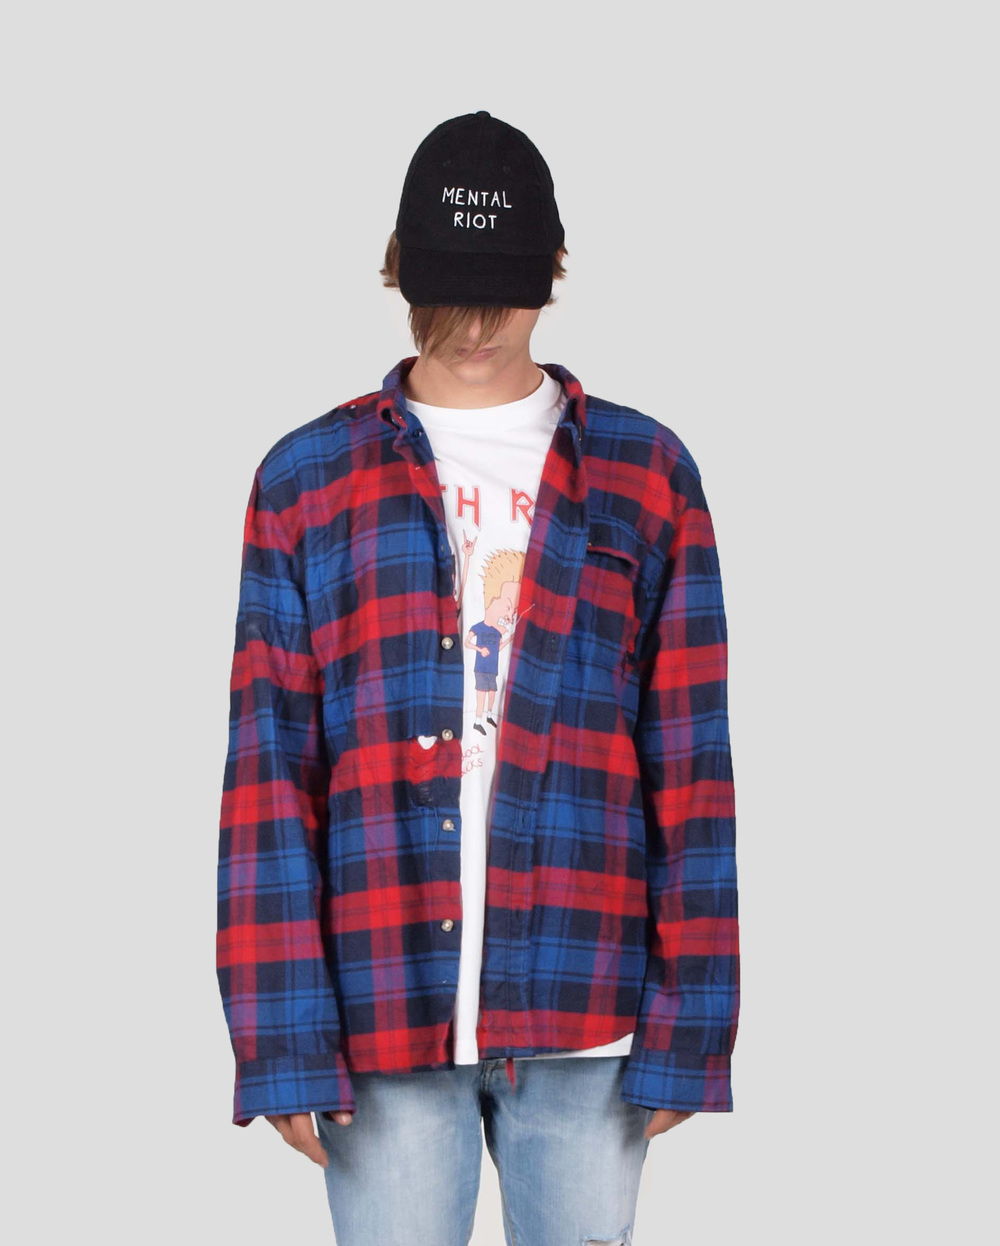 ERIS BLACK - RED & BLUE DISTRESSED PLAID SHIRT